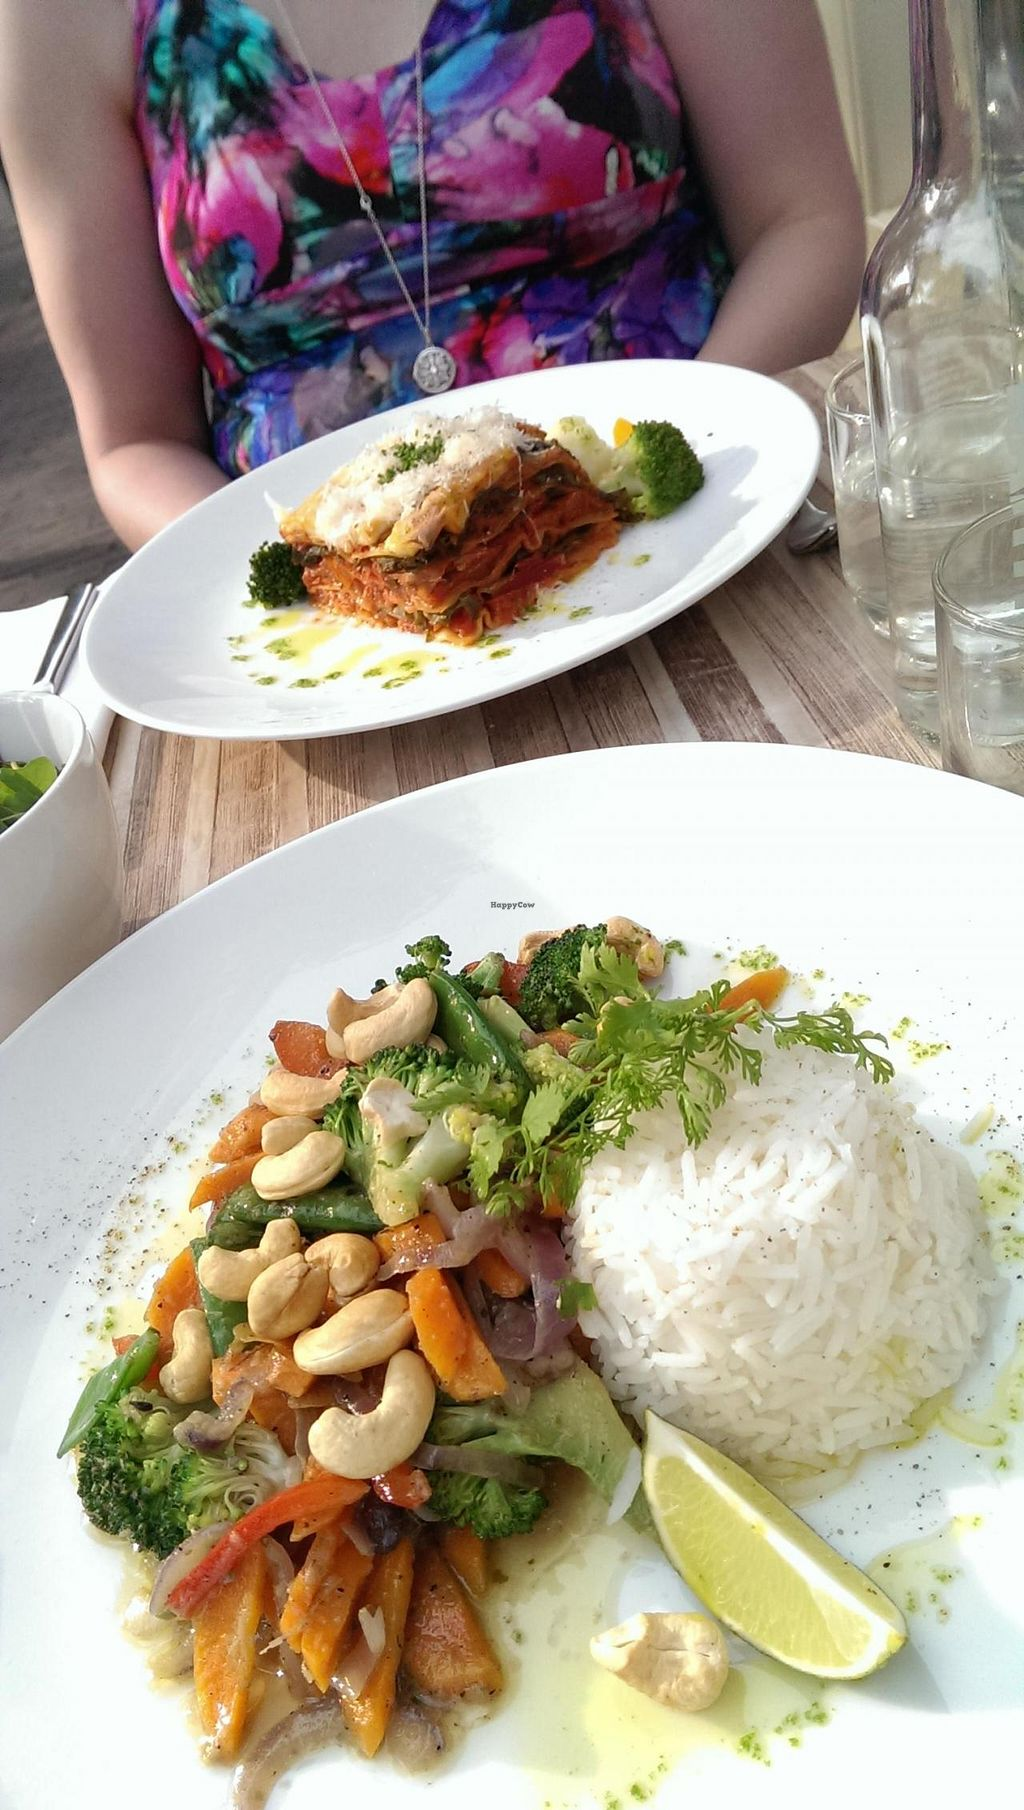 """Photo of CLOSED: De Eetstee  by <a href=""""/members/profile/mut1977"""">mut1977</a> <br/>Main course meal <br/> July 19, 2014  - <a href='/contact/abuse/image/17519/74477'>Report</a>"""